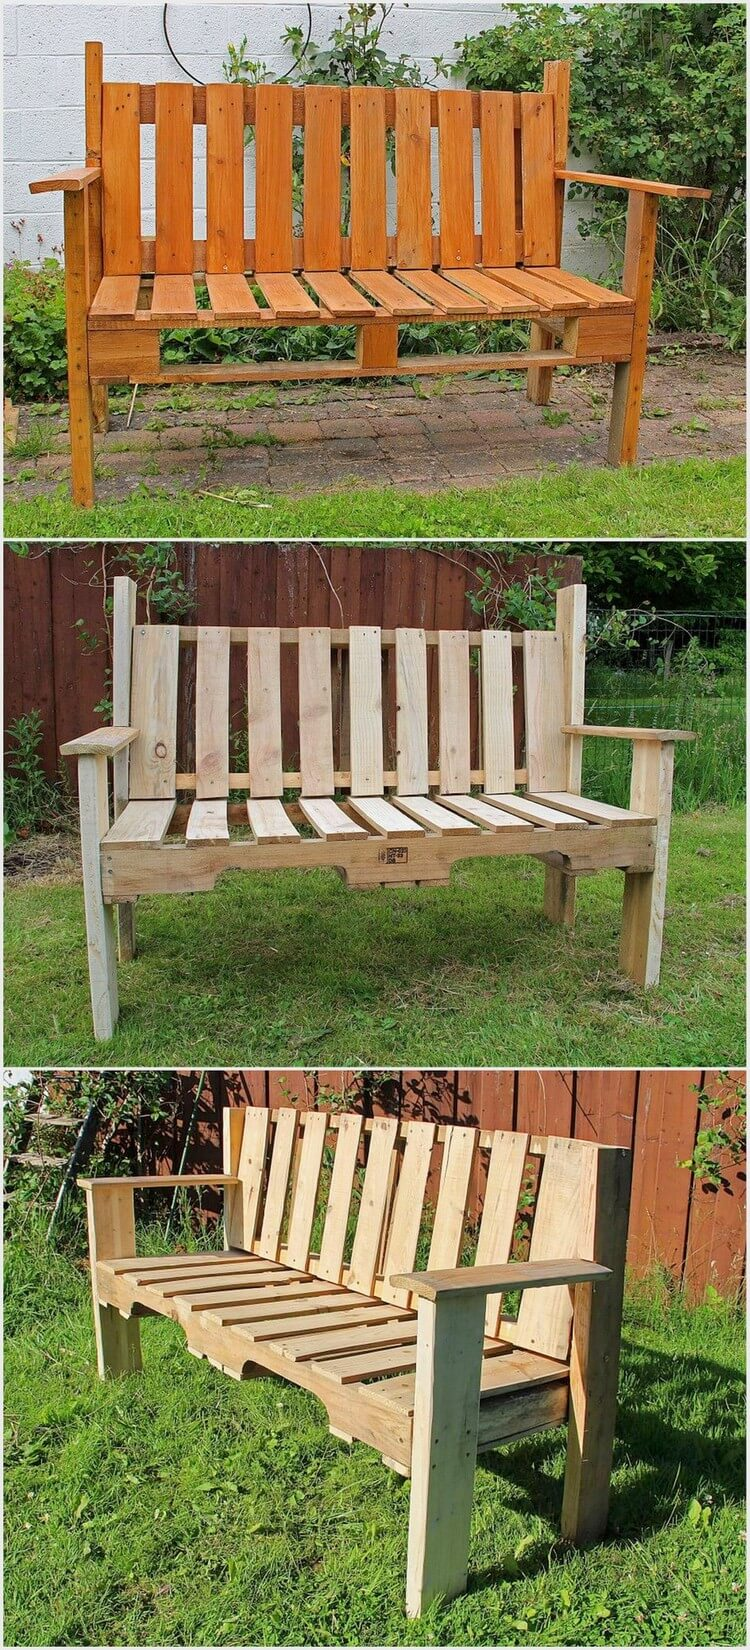 Innovative Ideas To Recycle Old Wood Pallets Pallet Wood